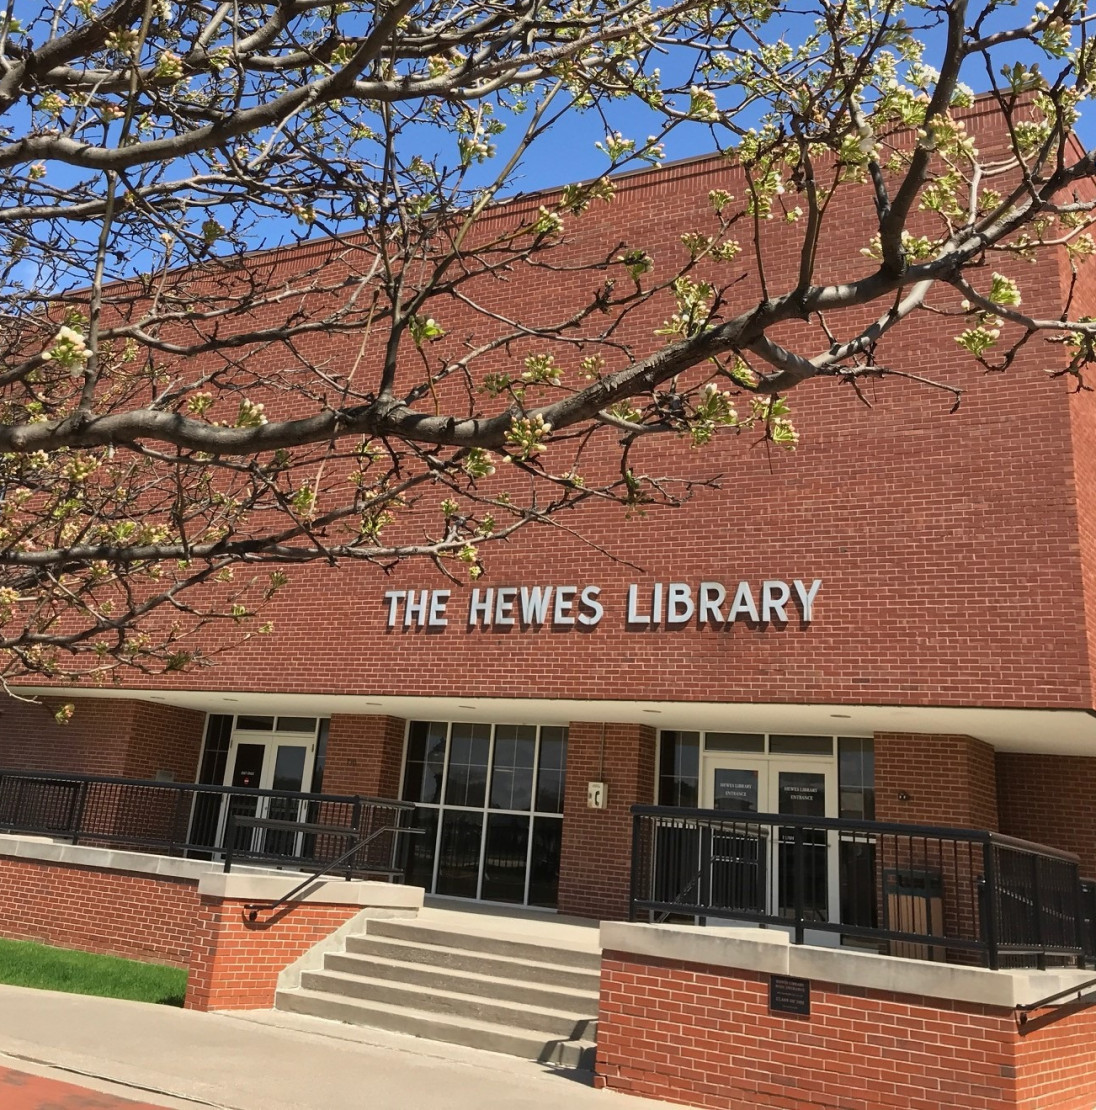 National Library Week spans April 19-25., which Hewes Library Director Sarah Henderson Henderson ...